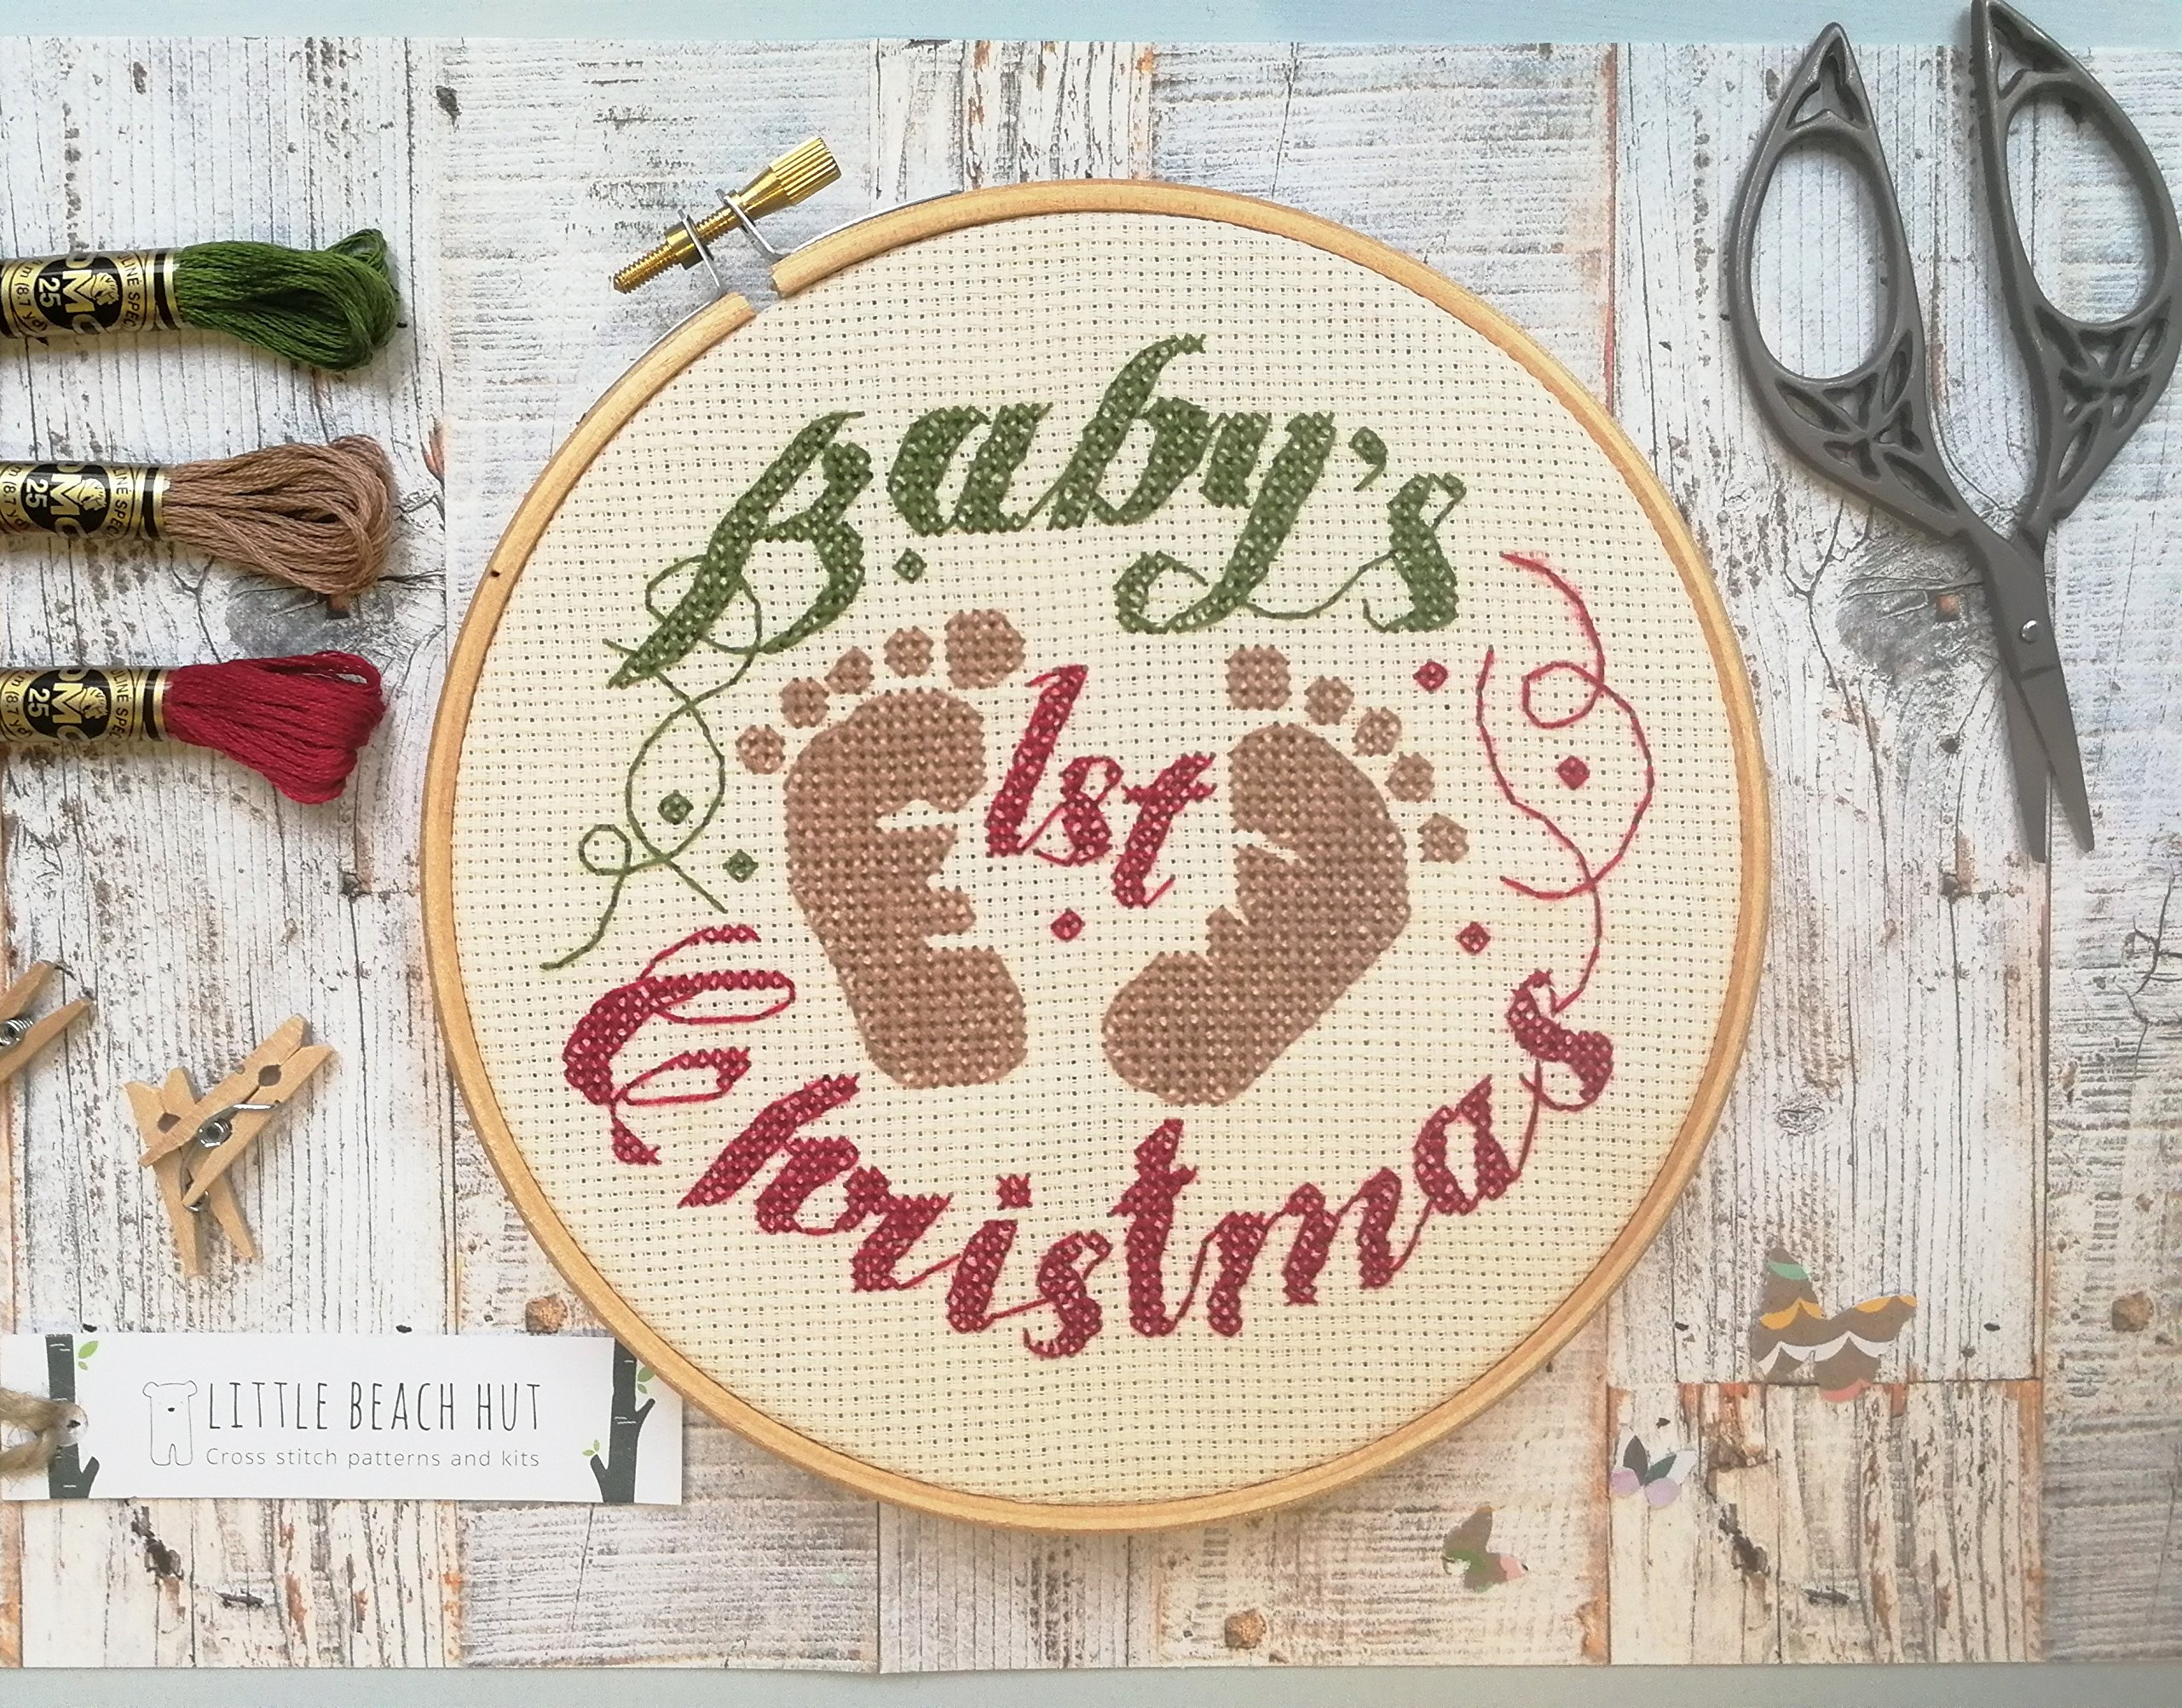 Embroidery Patterns Christmas Ba Cross Stitch Kit Gifts For A Ba First Christmas New Ba Embroidery Pattern Diy Kit